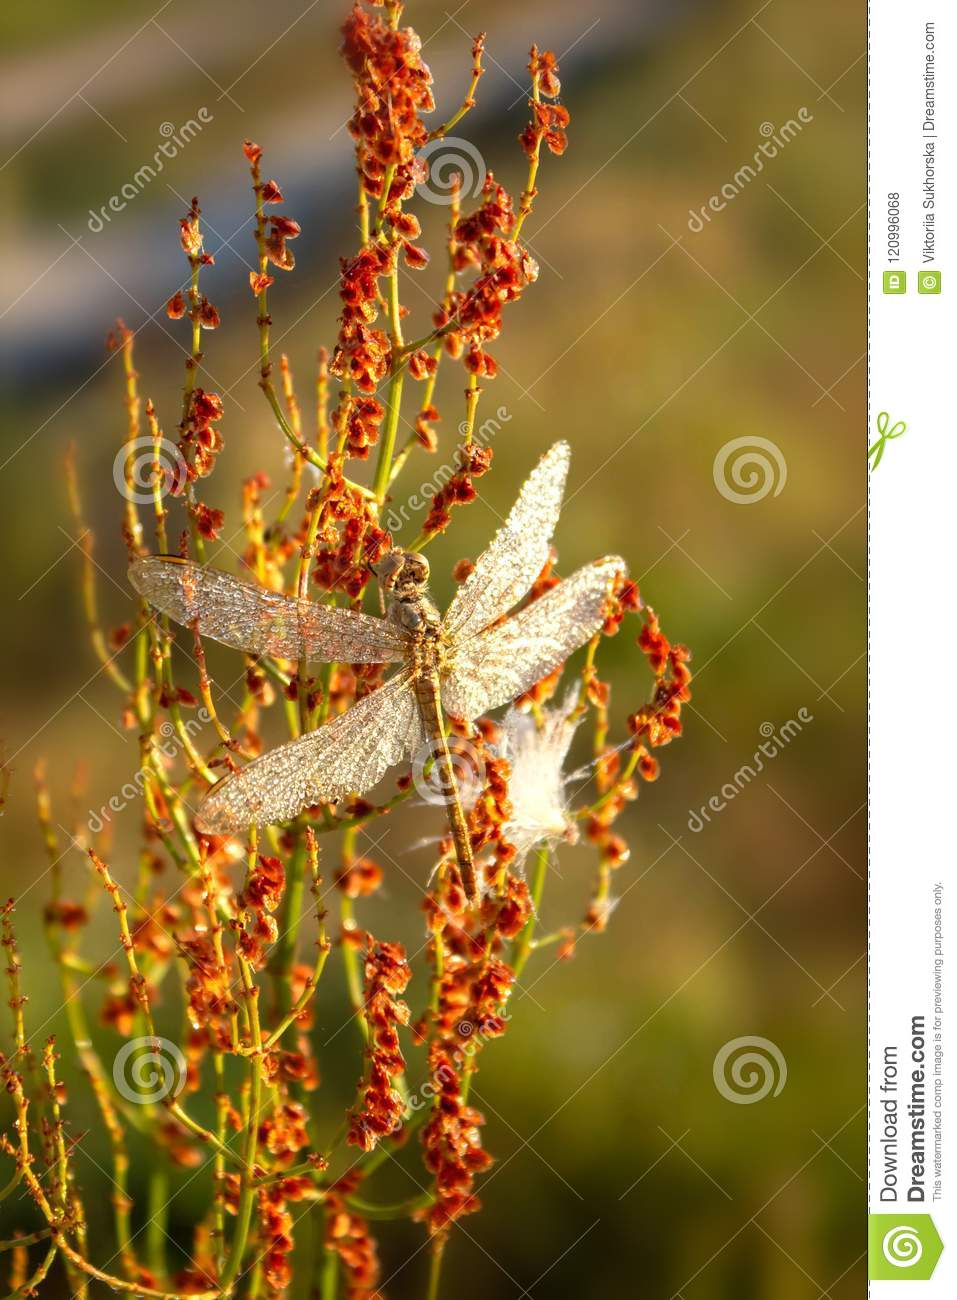 A beautiful insect of a dragonfly Sympetrum vulgatum against a background of green vegetative natural background. Toning